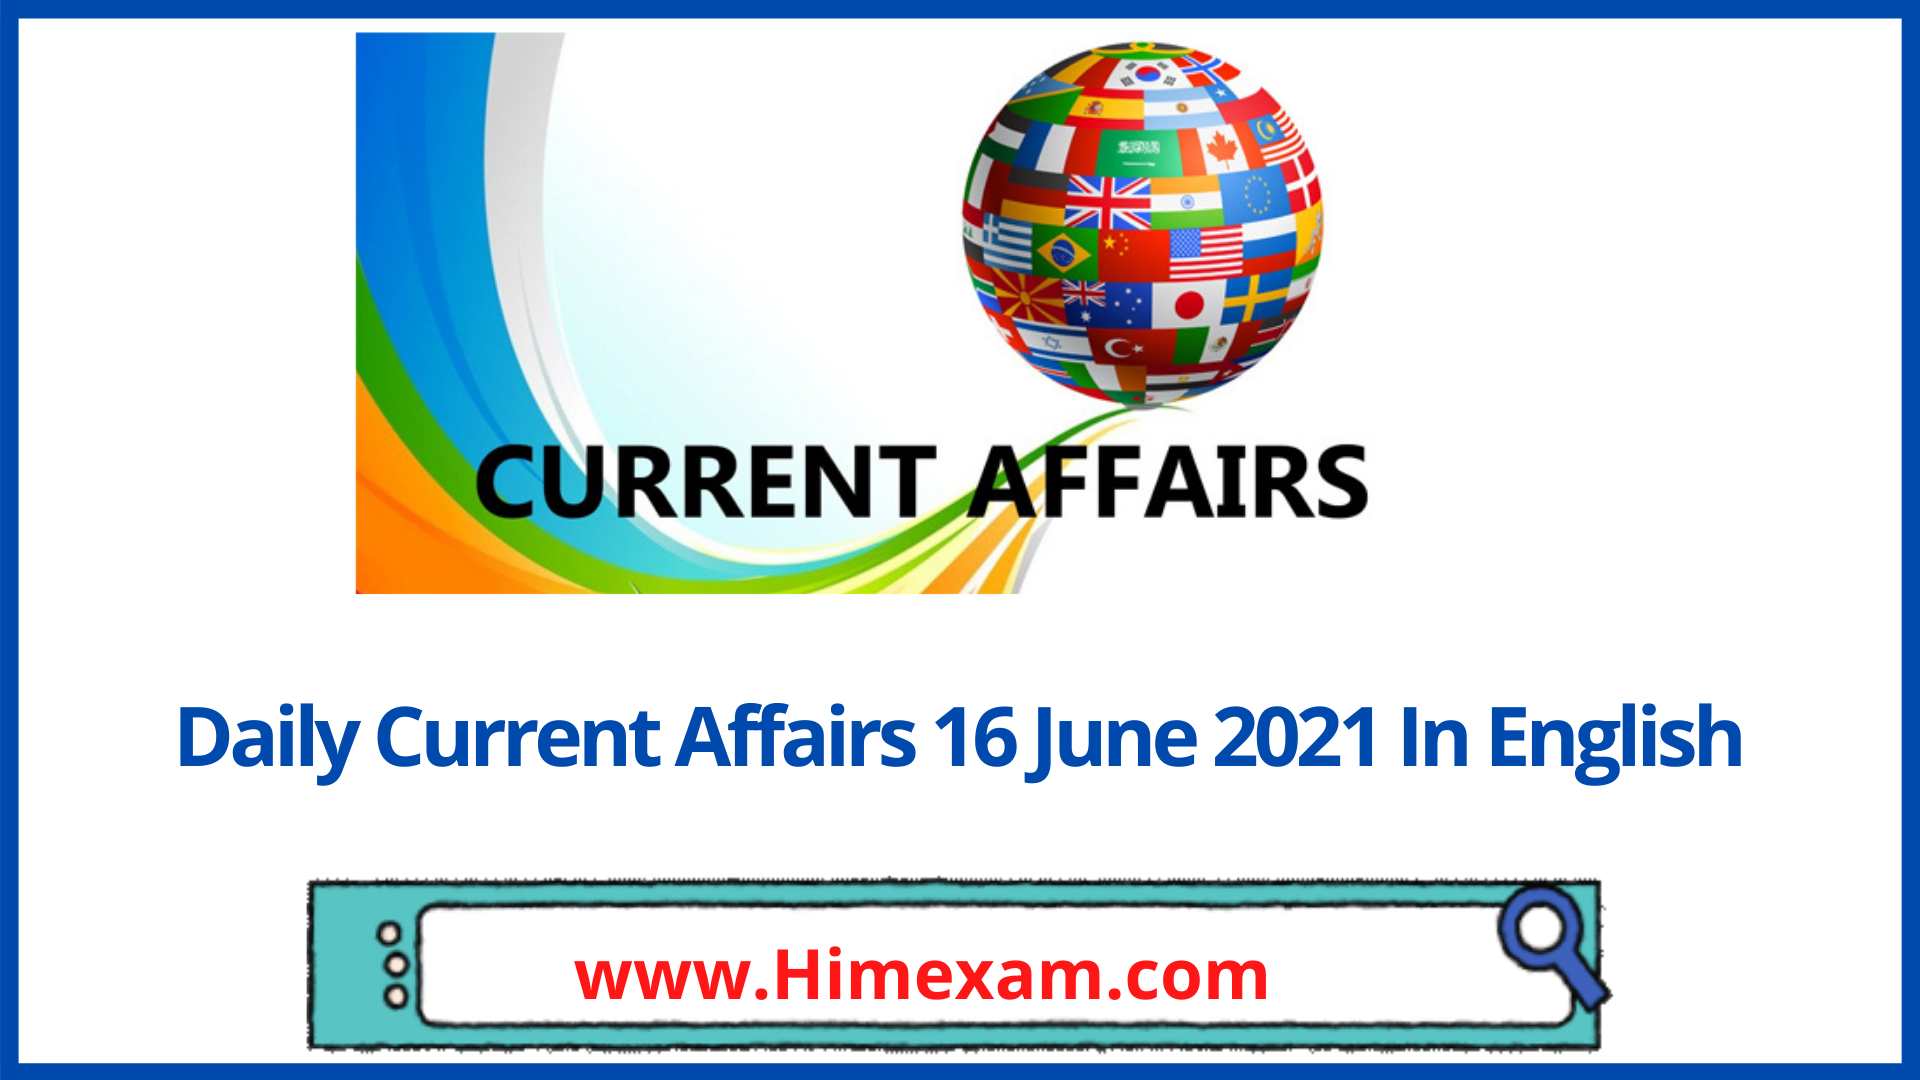 Daily Current Affairs 16 June 2021 In English